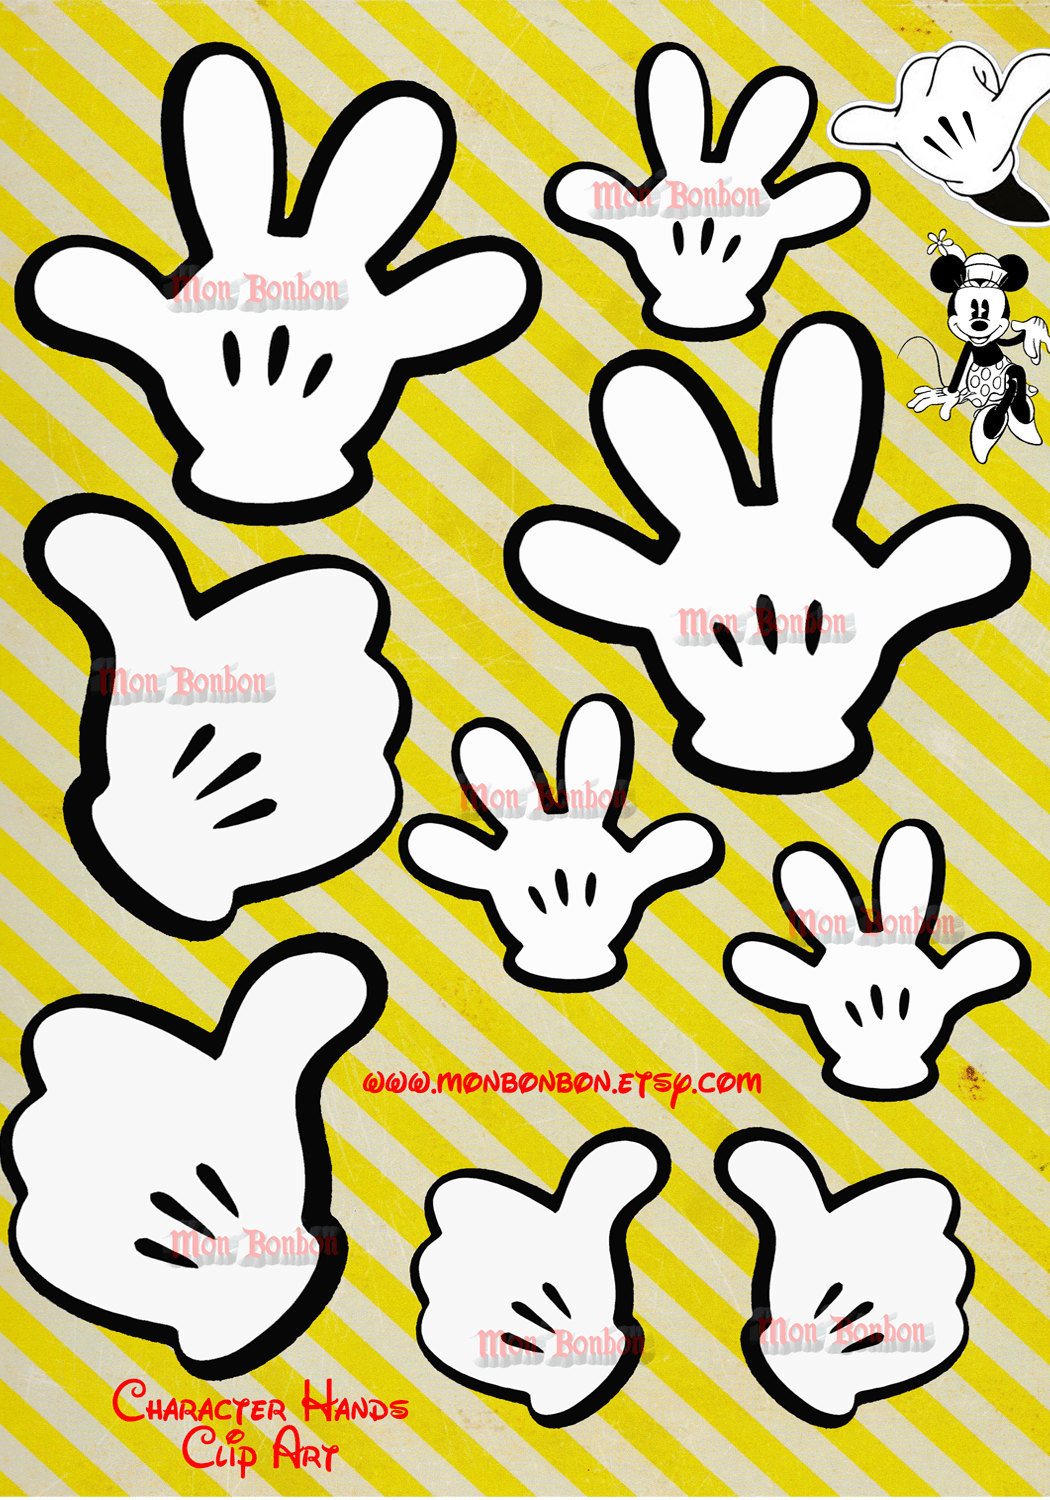 Card clipart gloved hand DOWNLOAD Hands card Inspired Digital